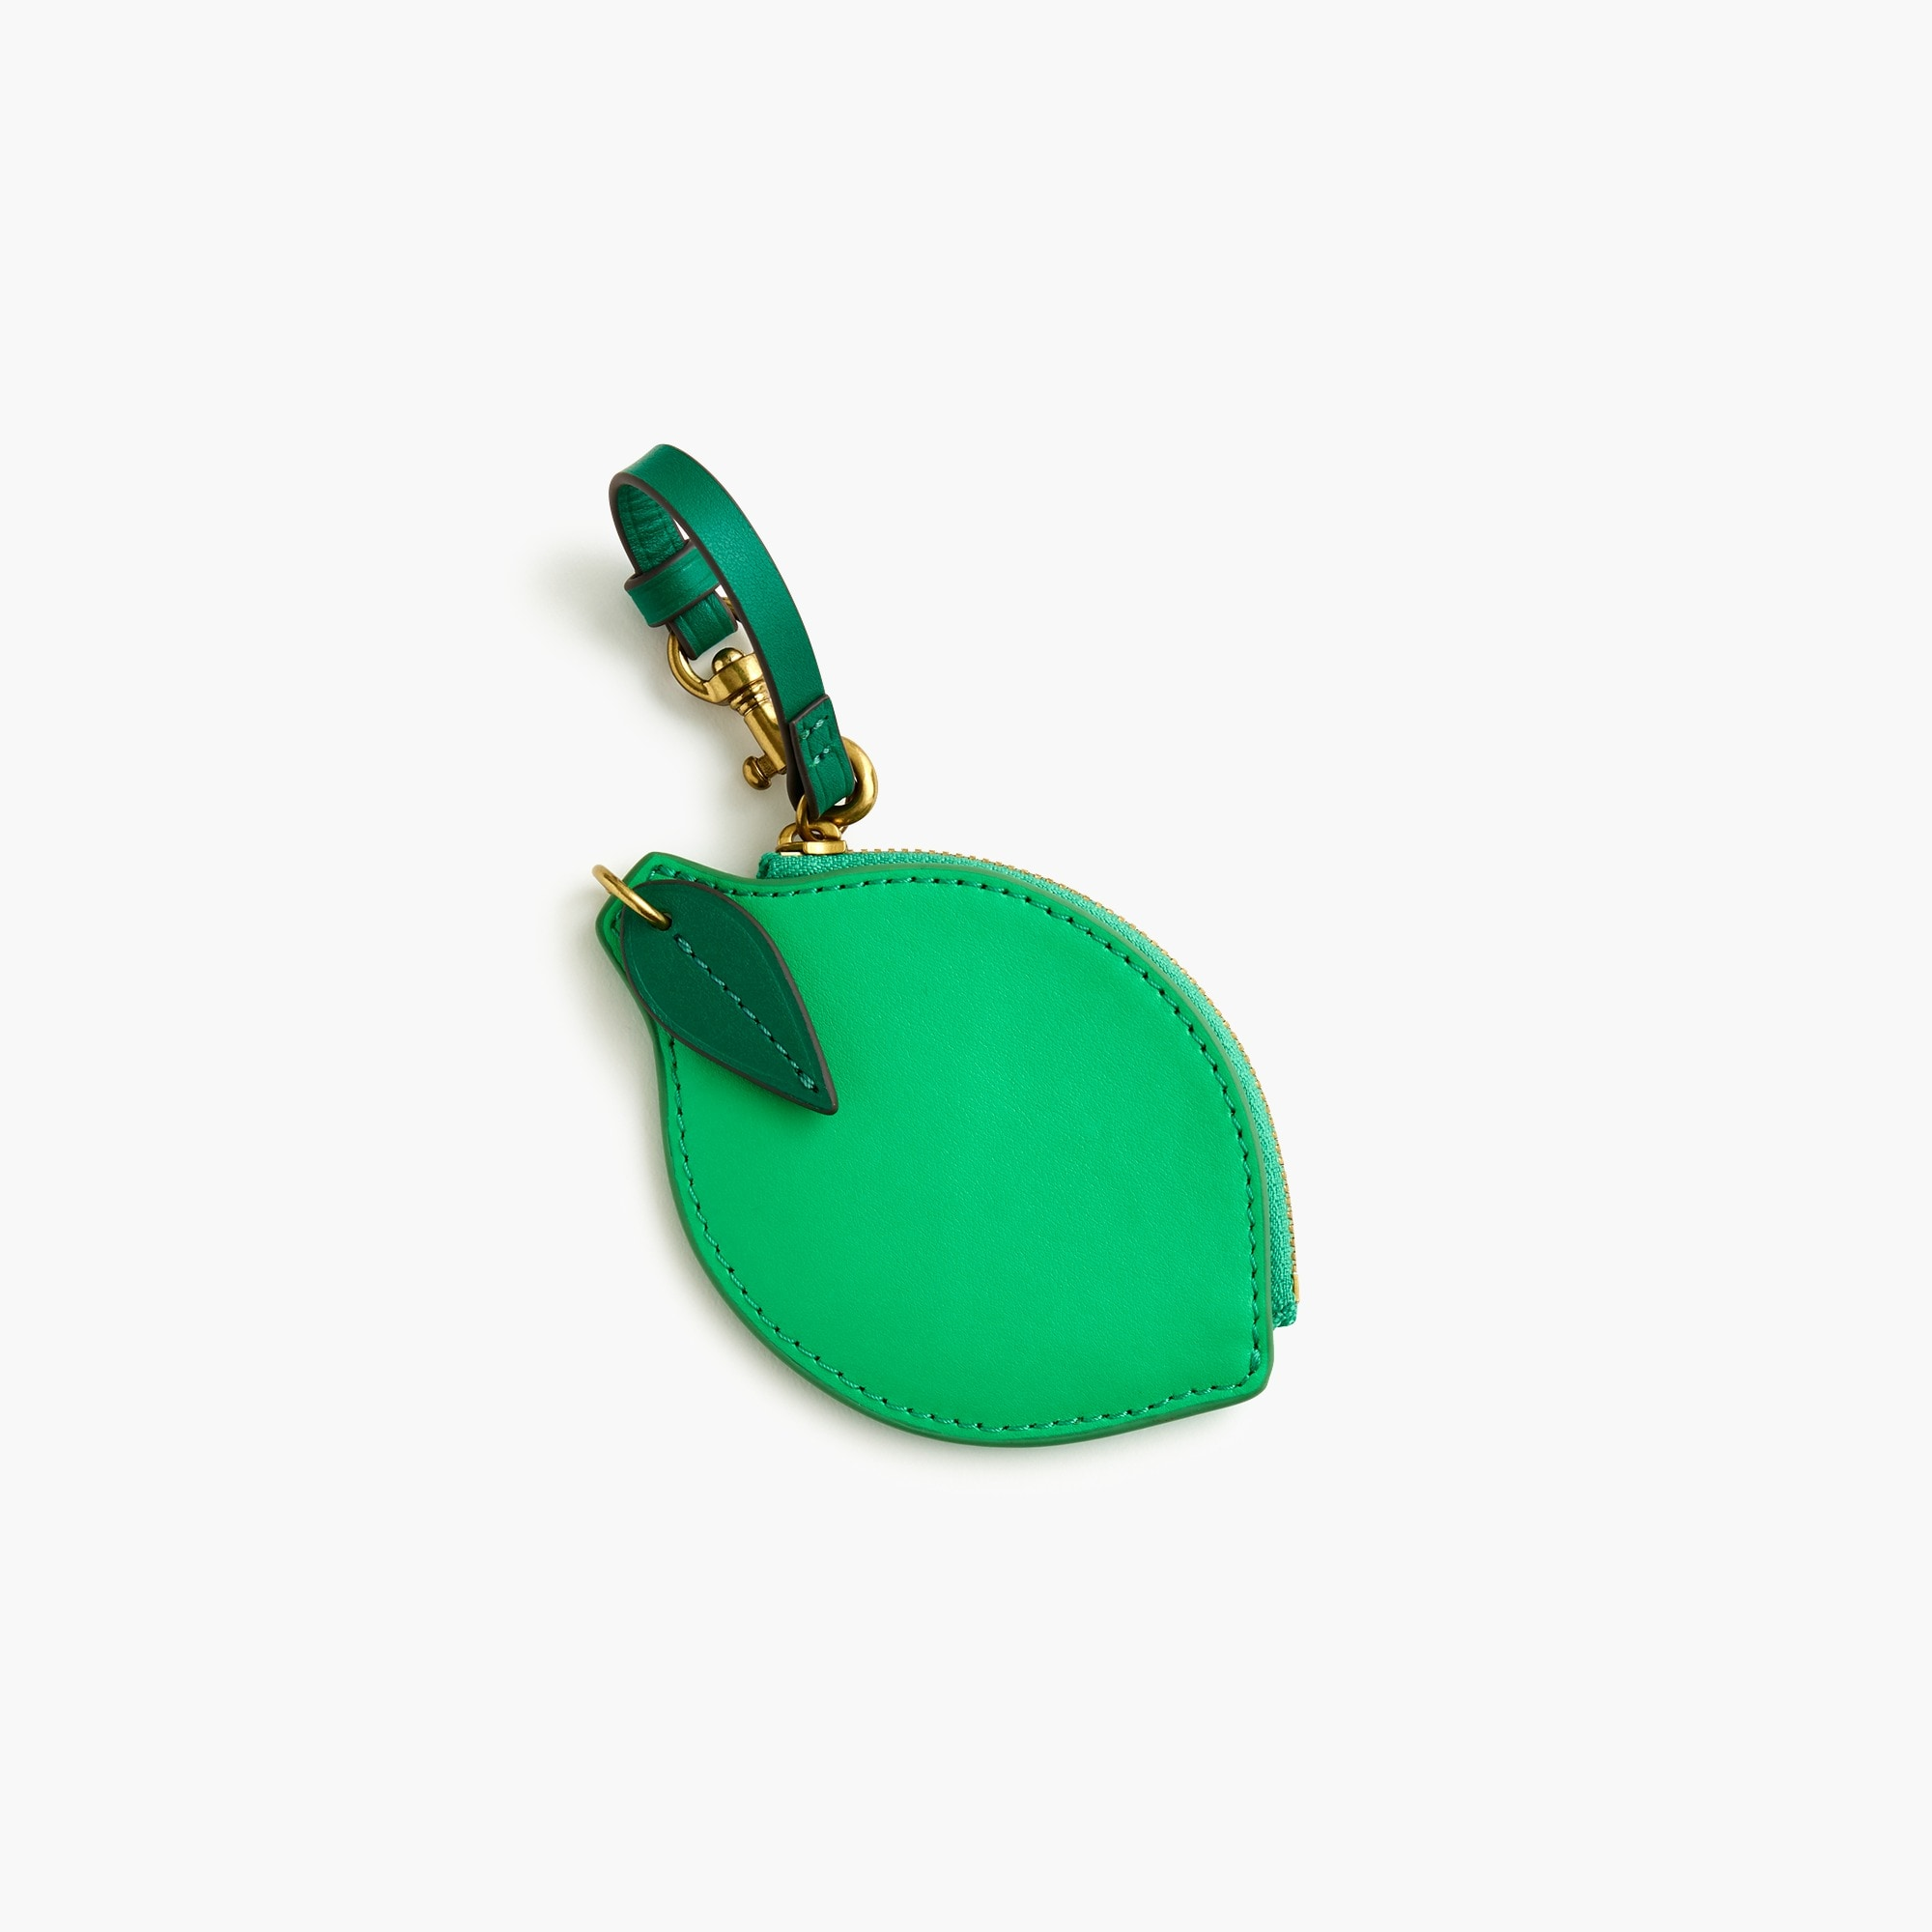 Image 1 for Lime coin purse